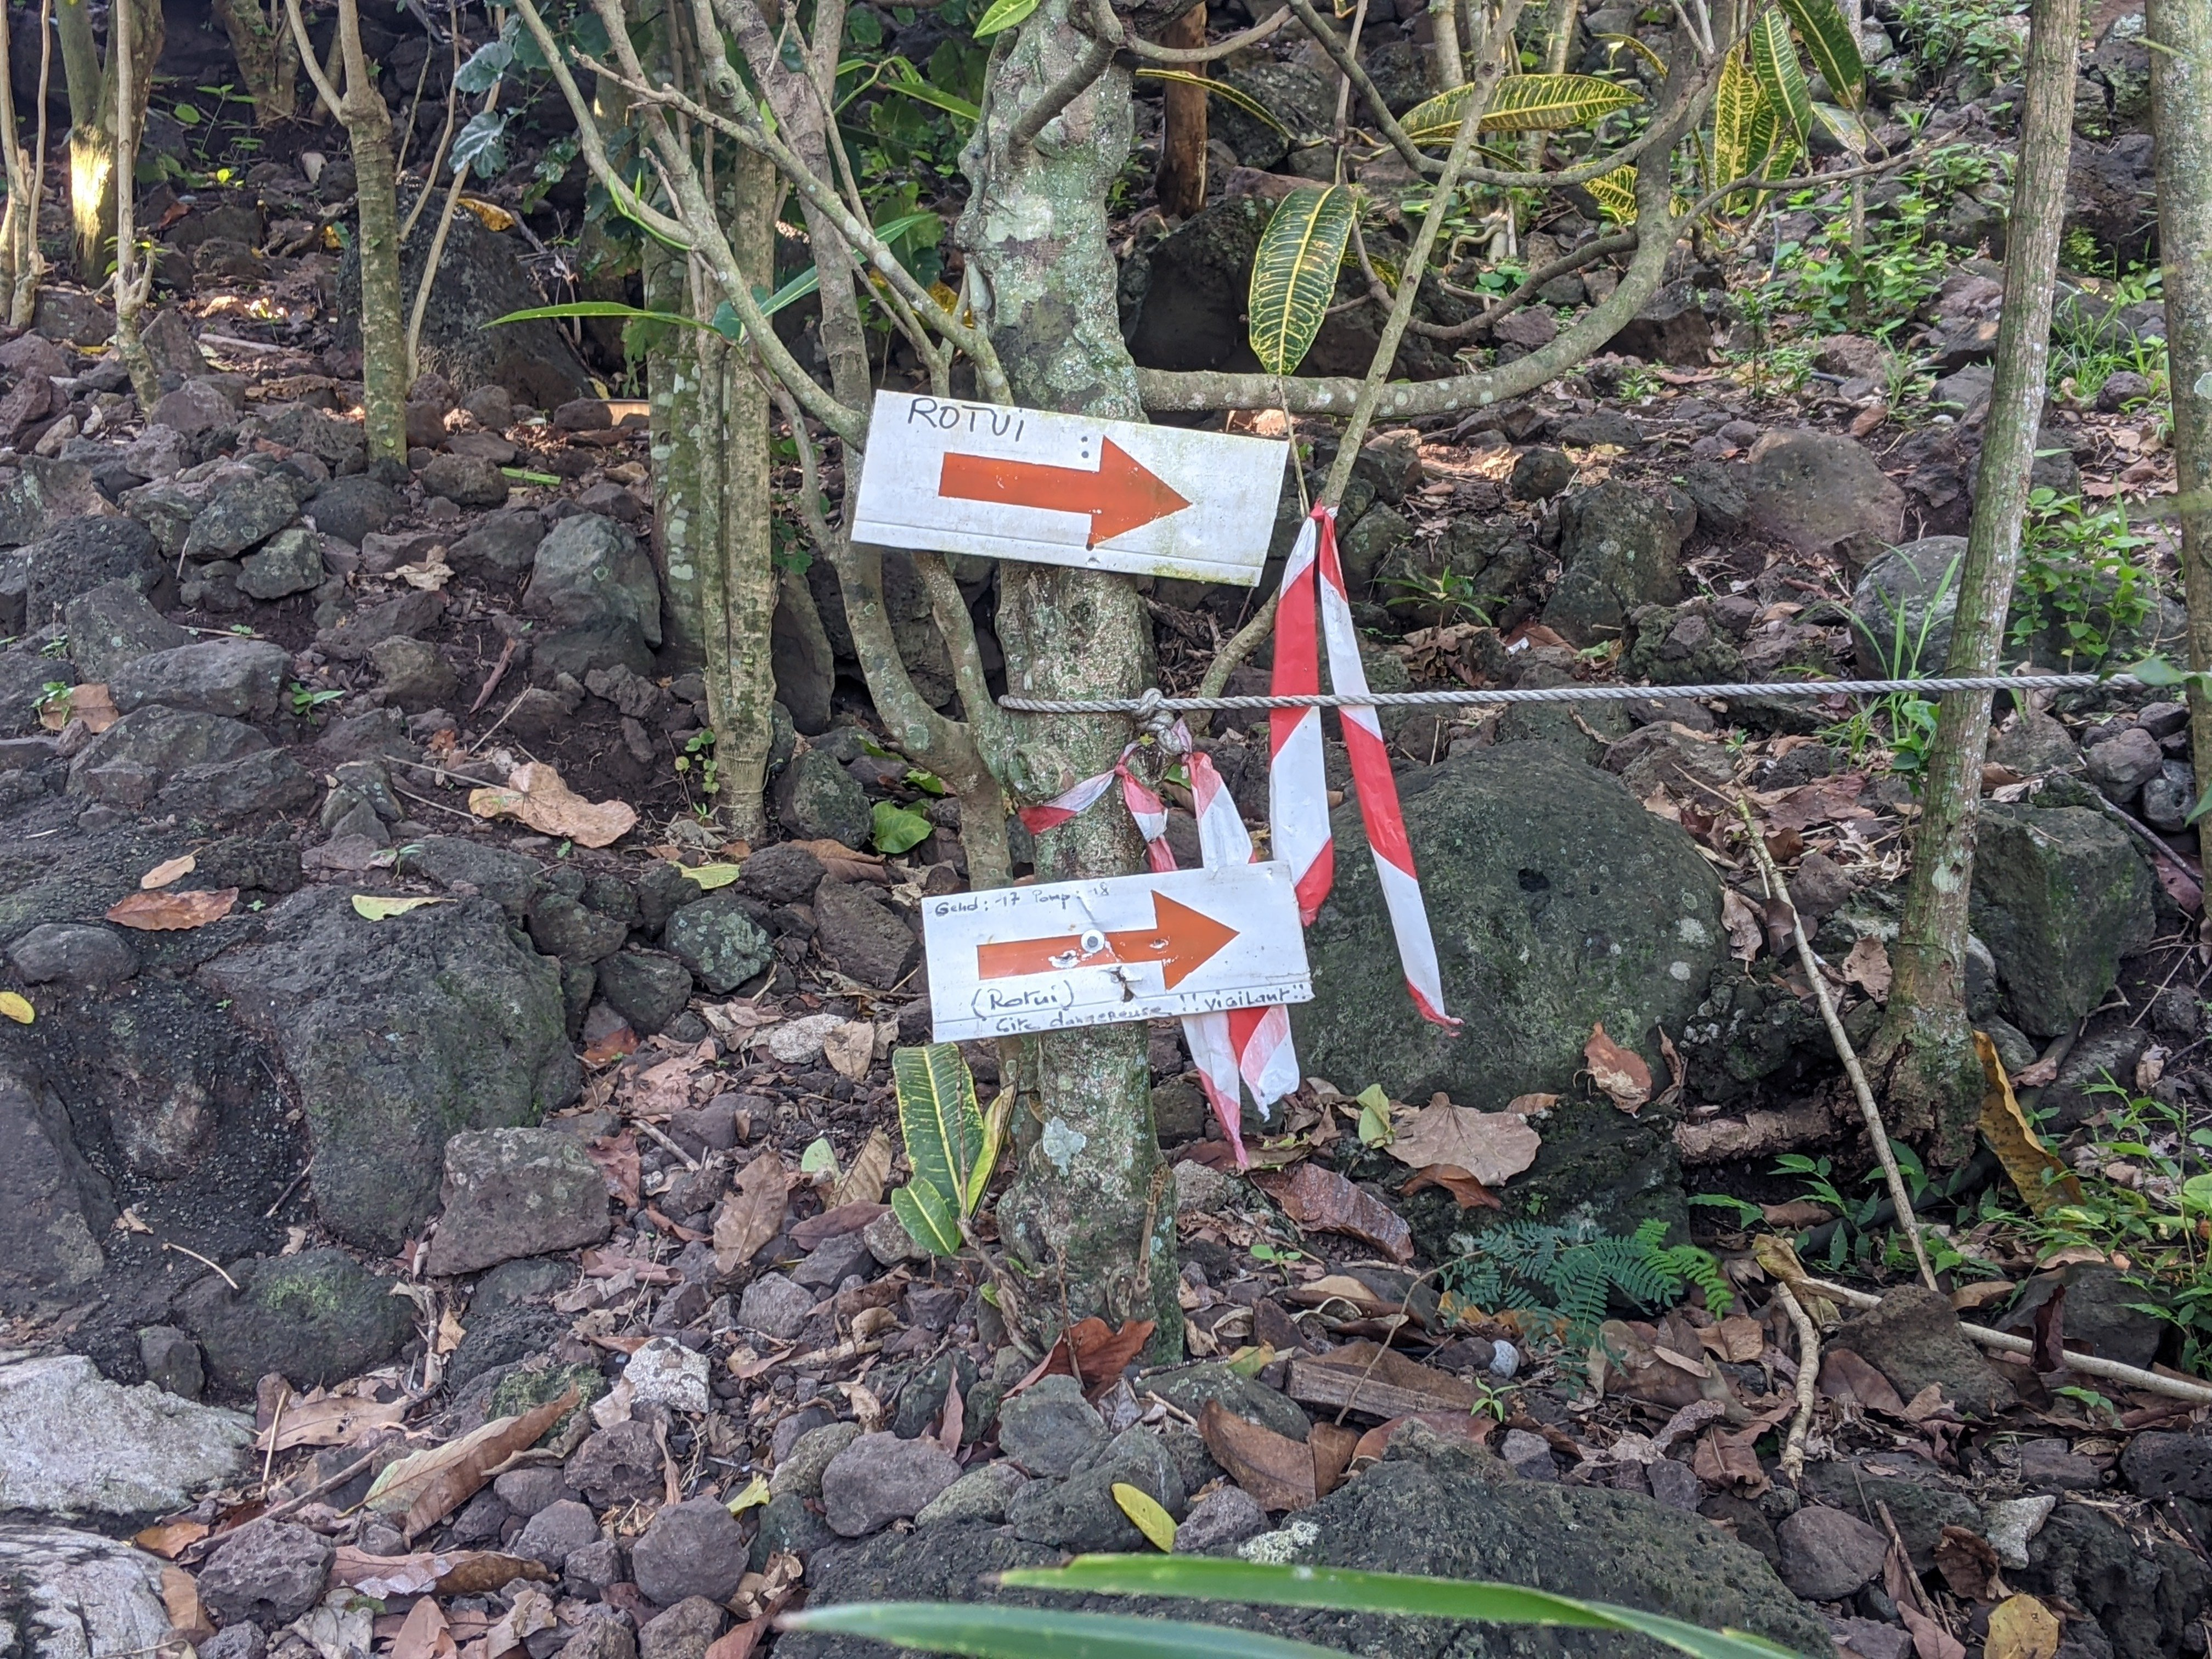 More Signs Leading To Mount Rotui in Moorea. One Of The Best Hiking Trails.